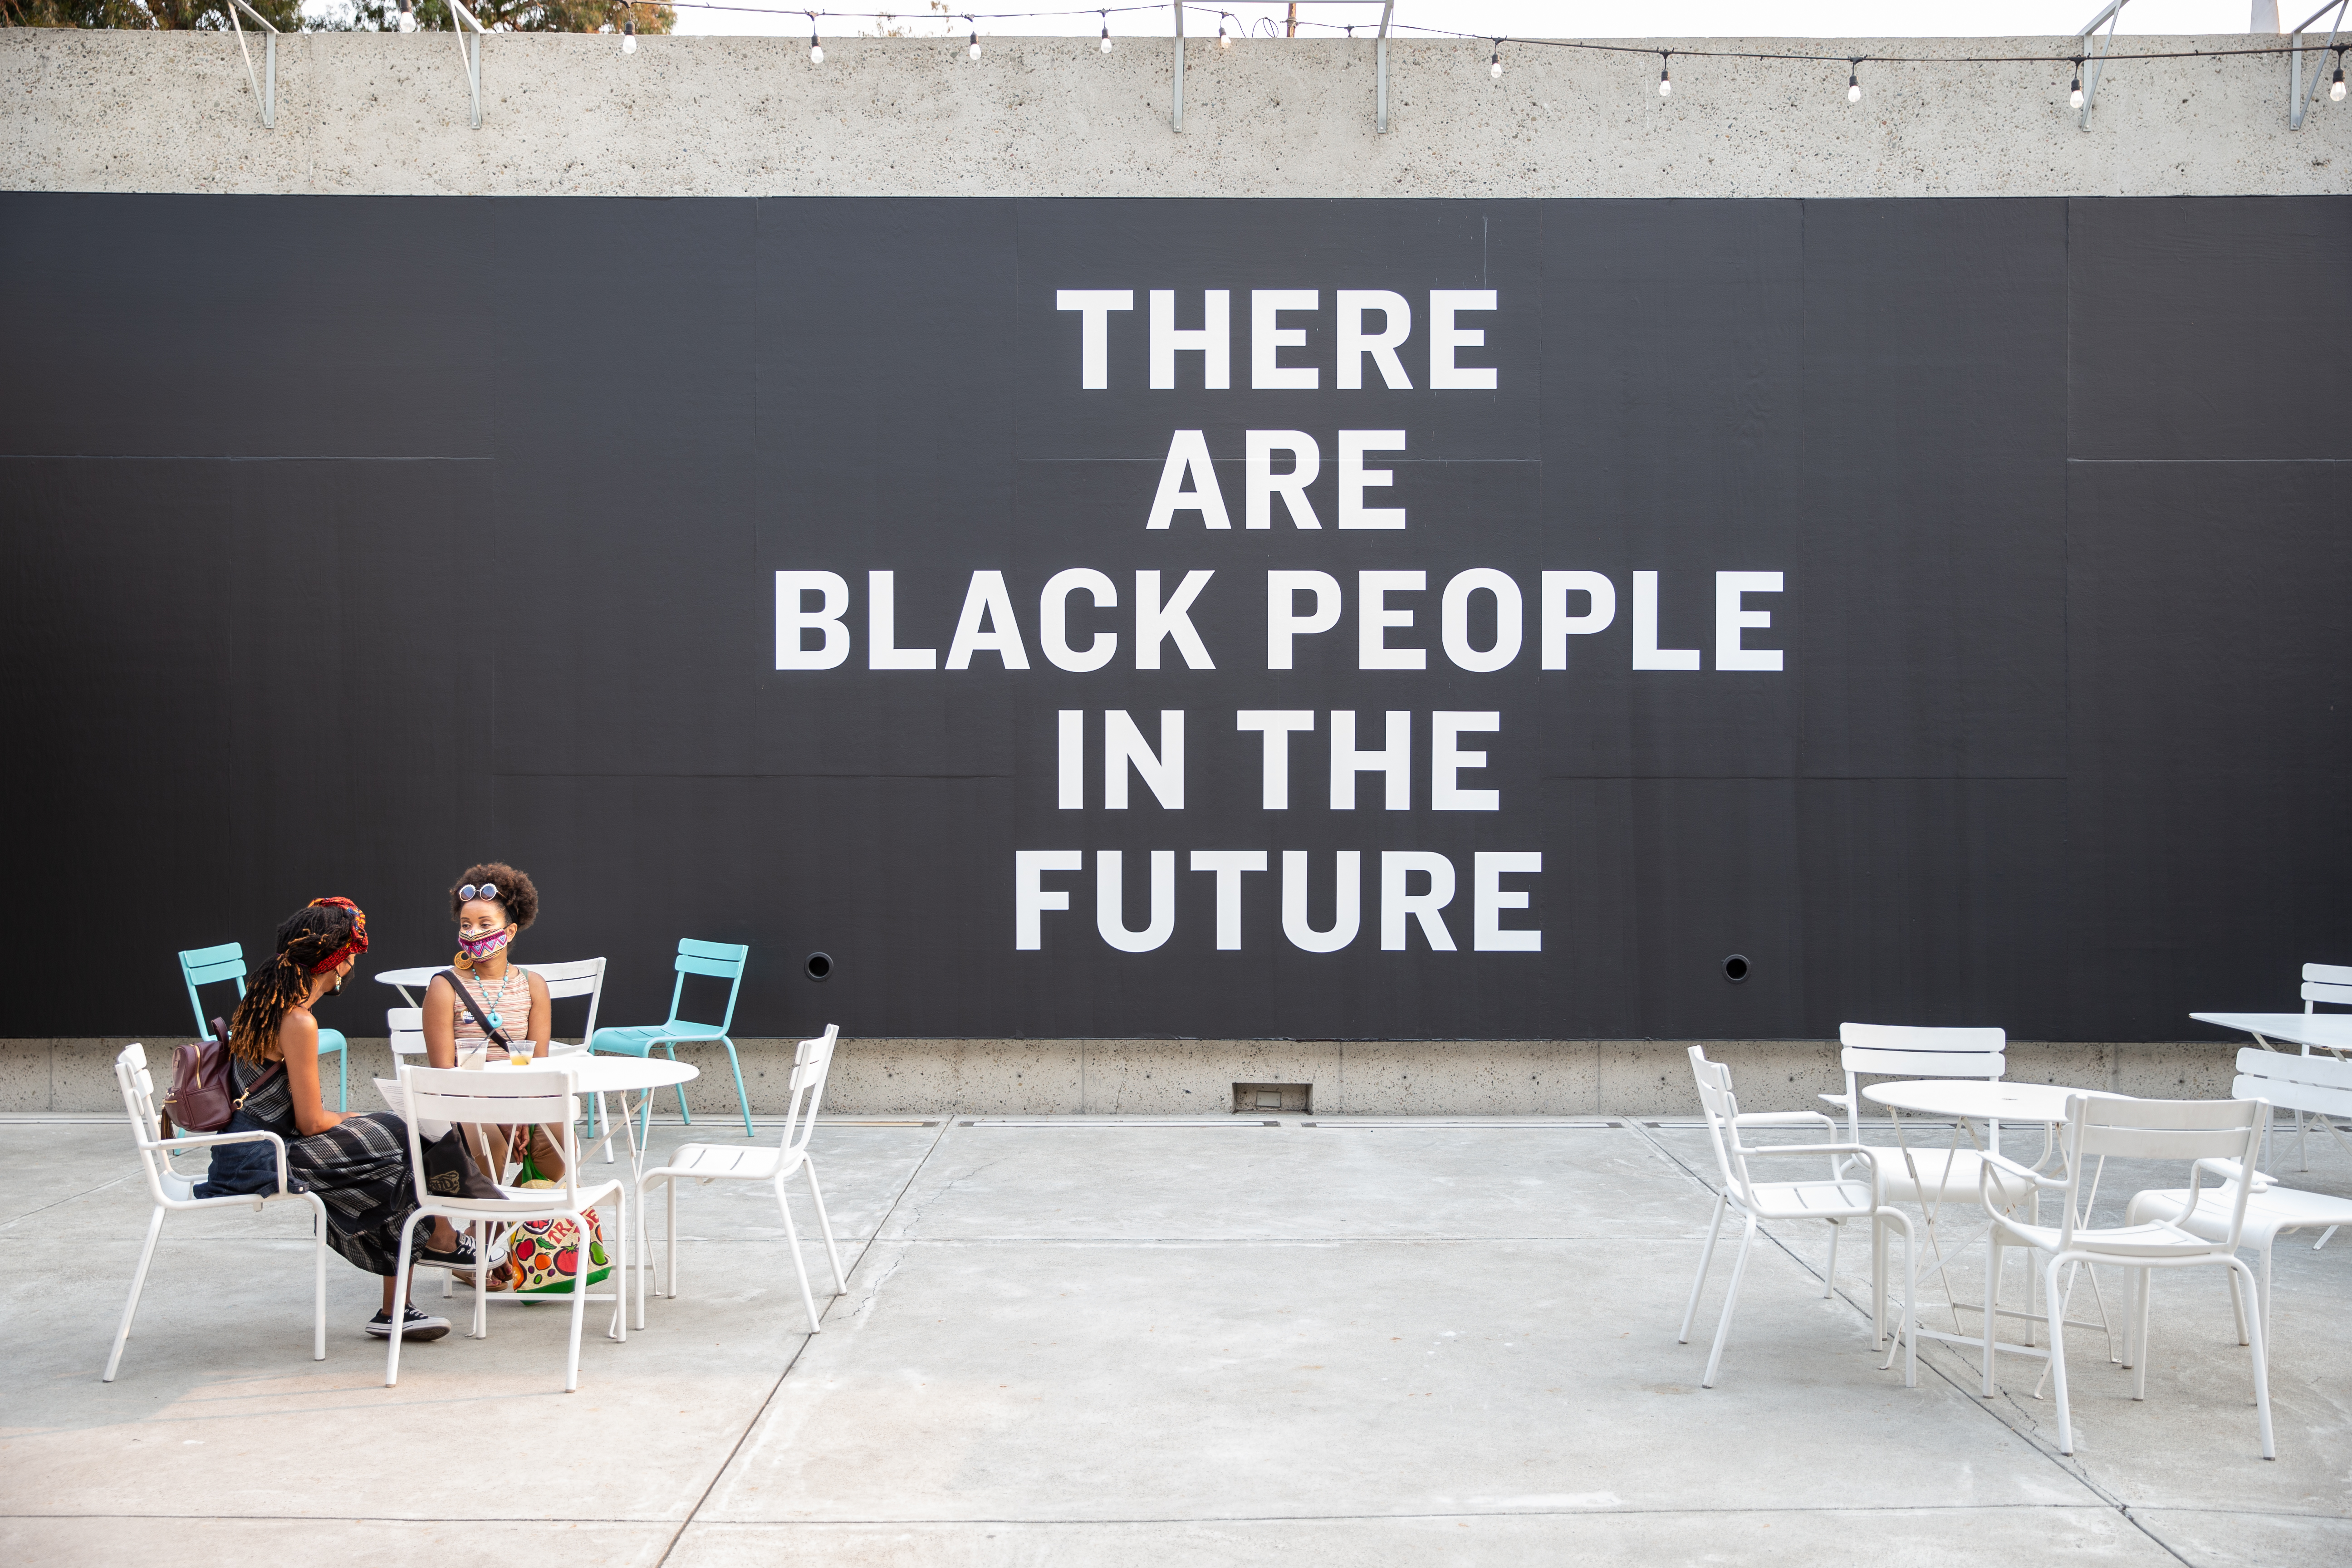 Two women sit at a picnic table in front of the chalkboard wall reading There Are Black People In The Future.